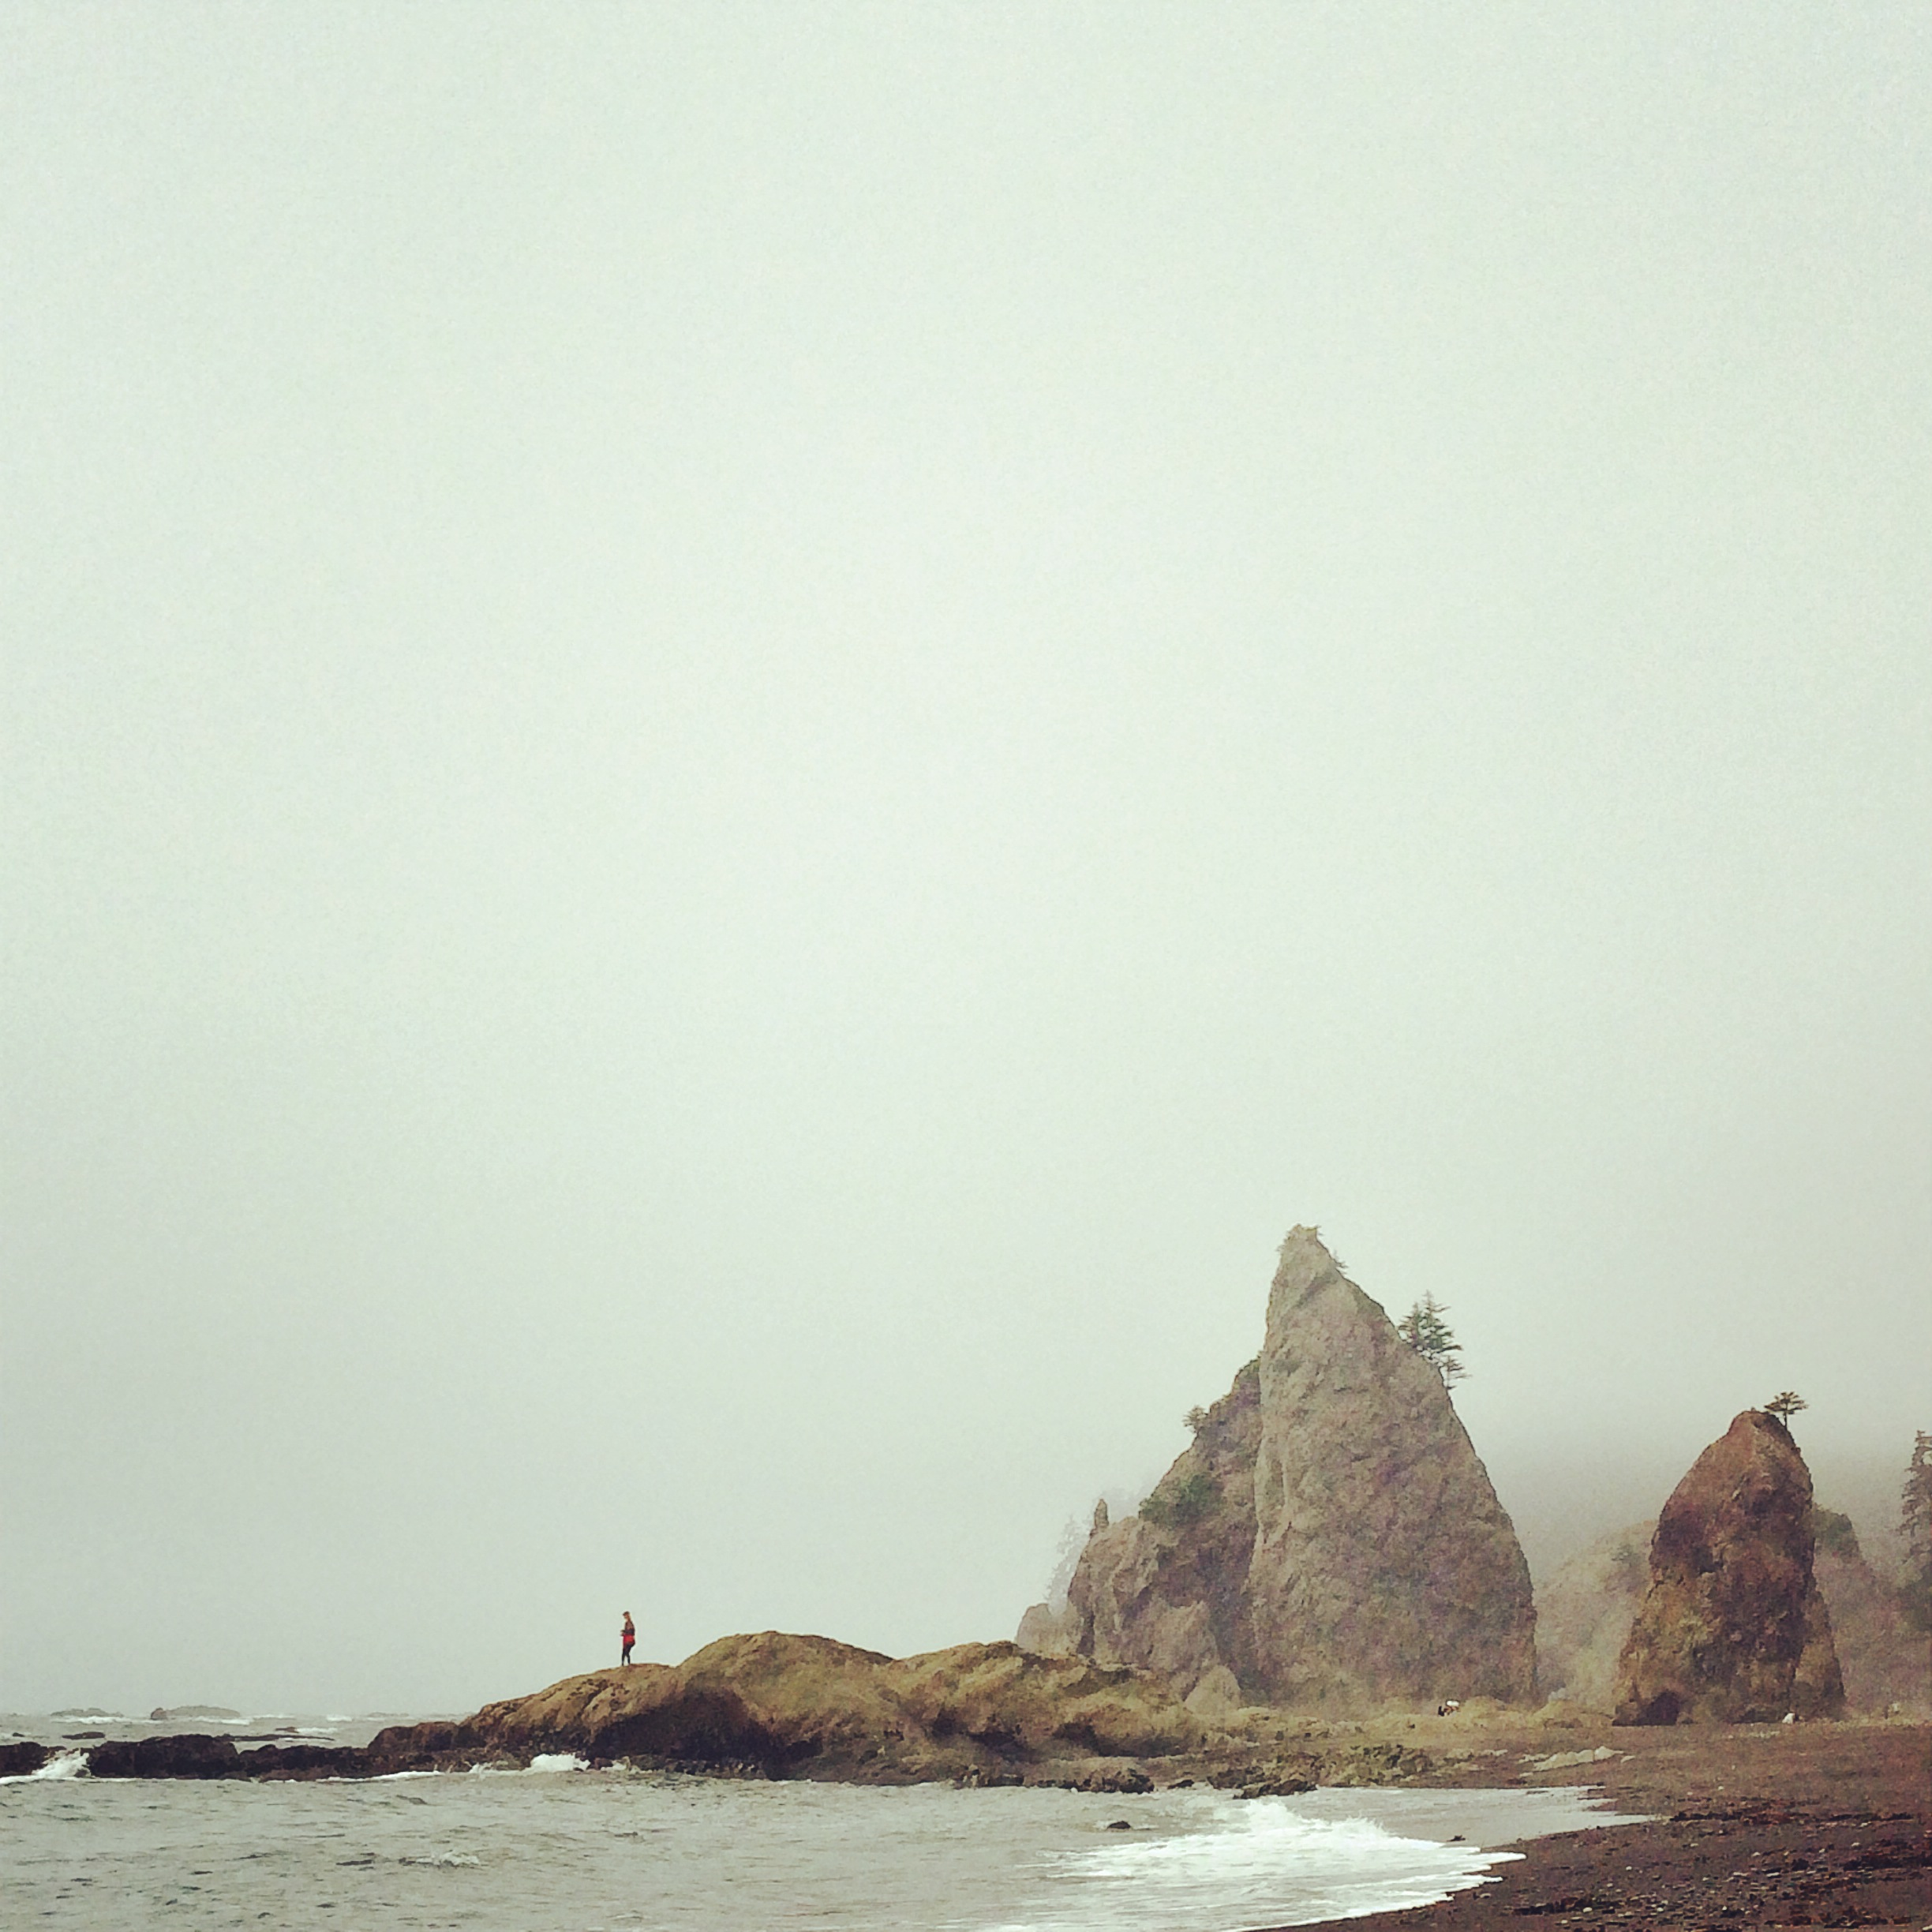 Foggy morning at Rialto Beach in Olympic National Park